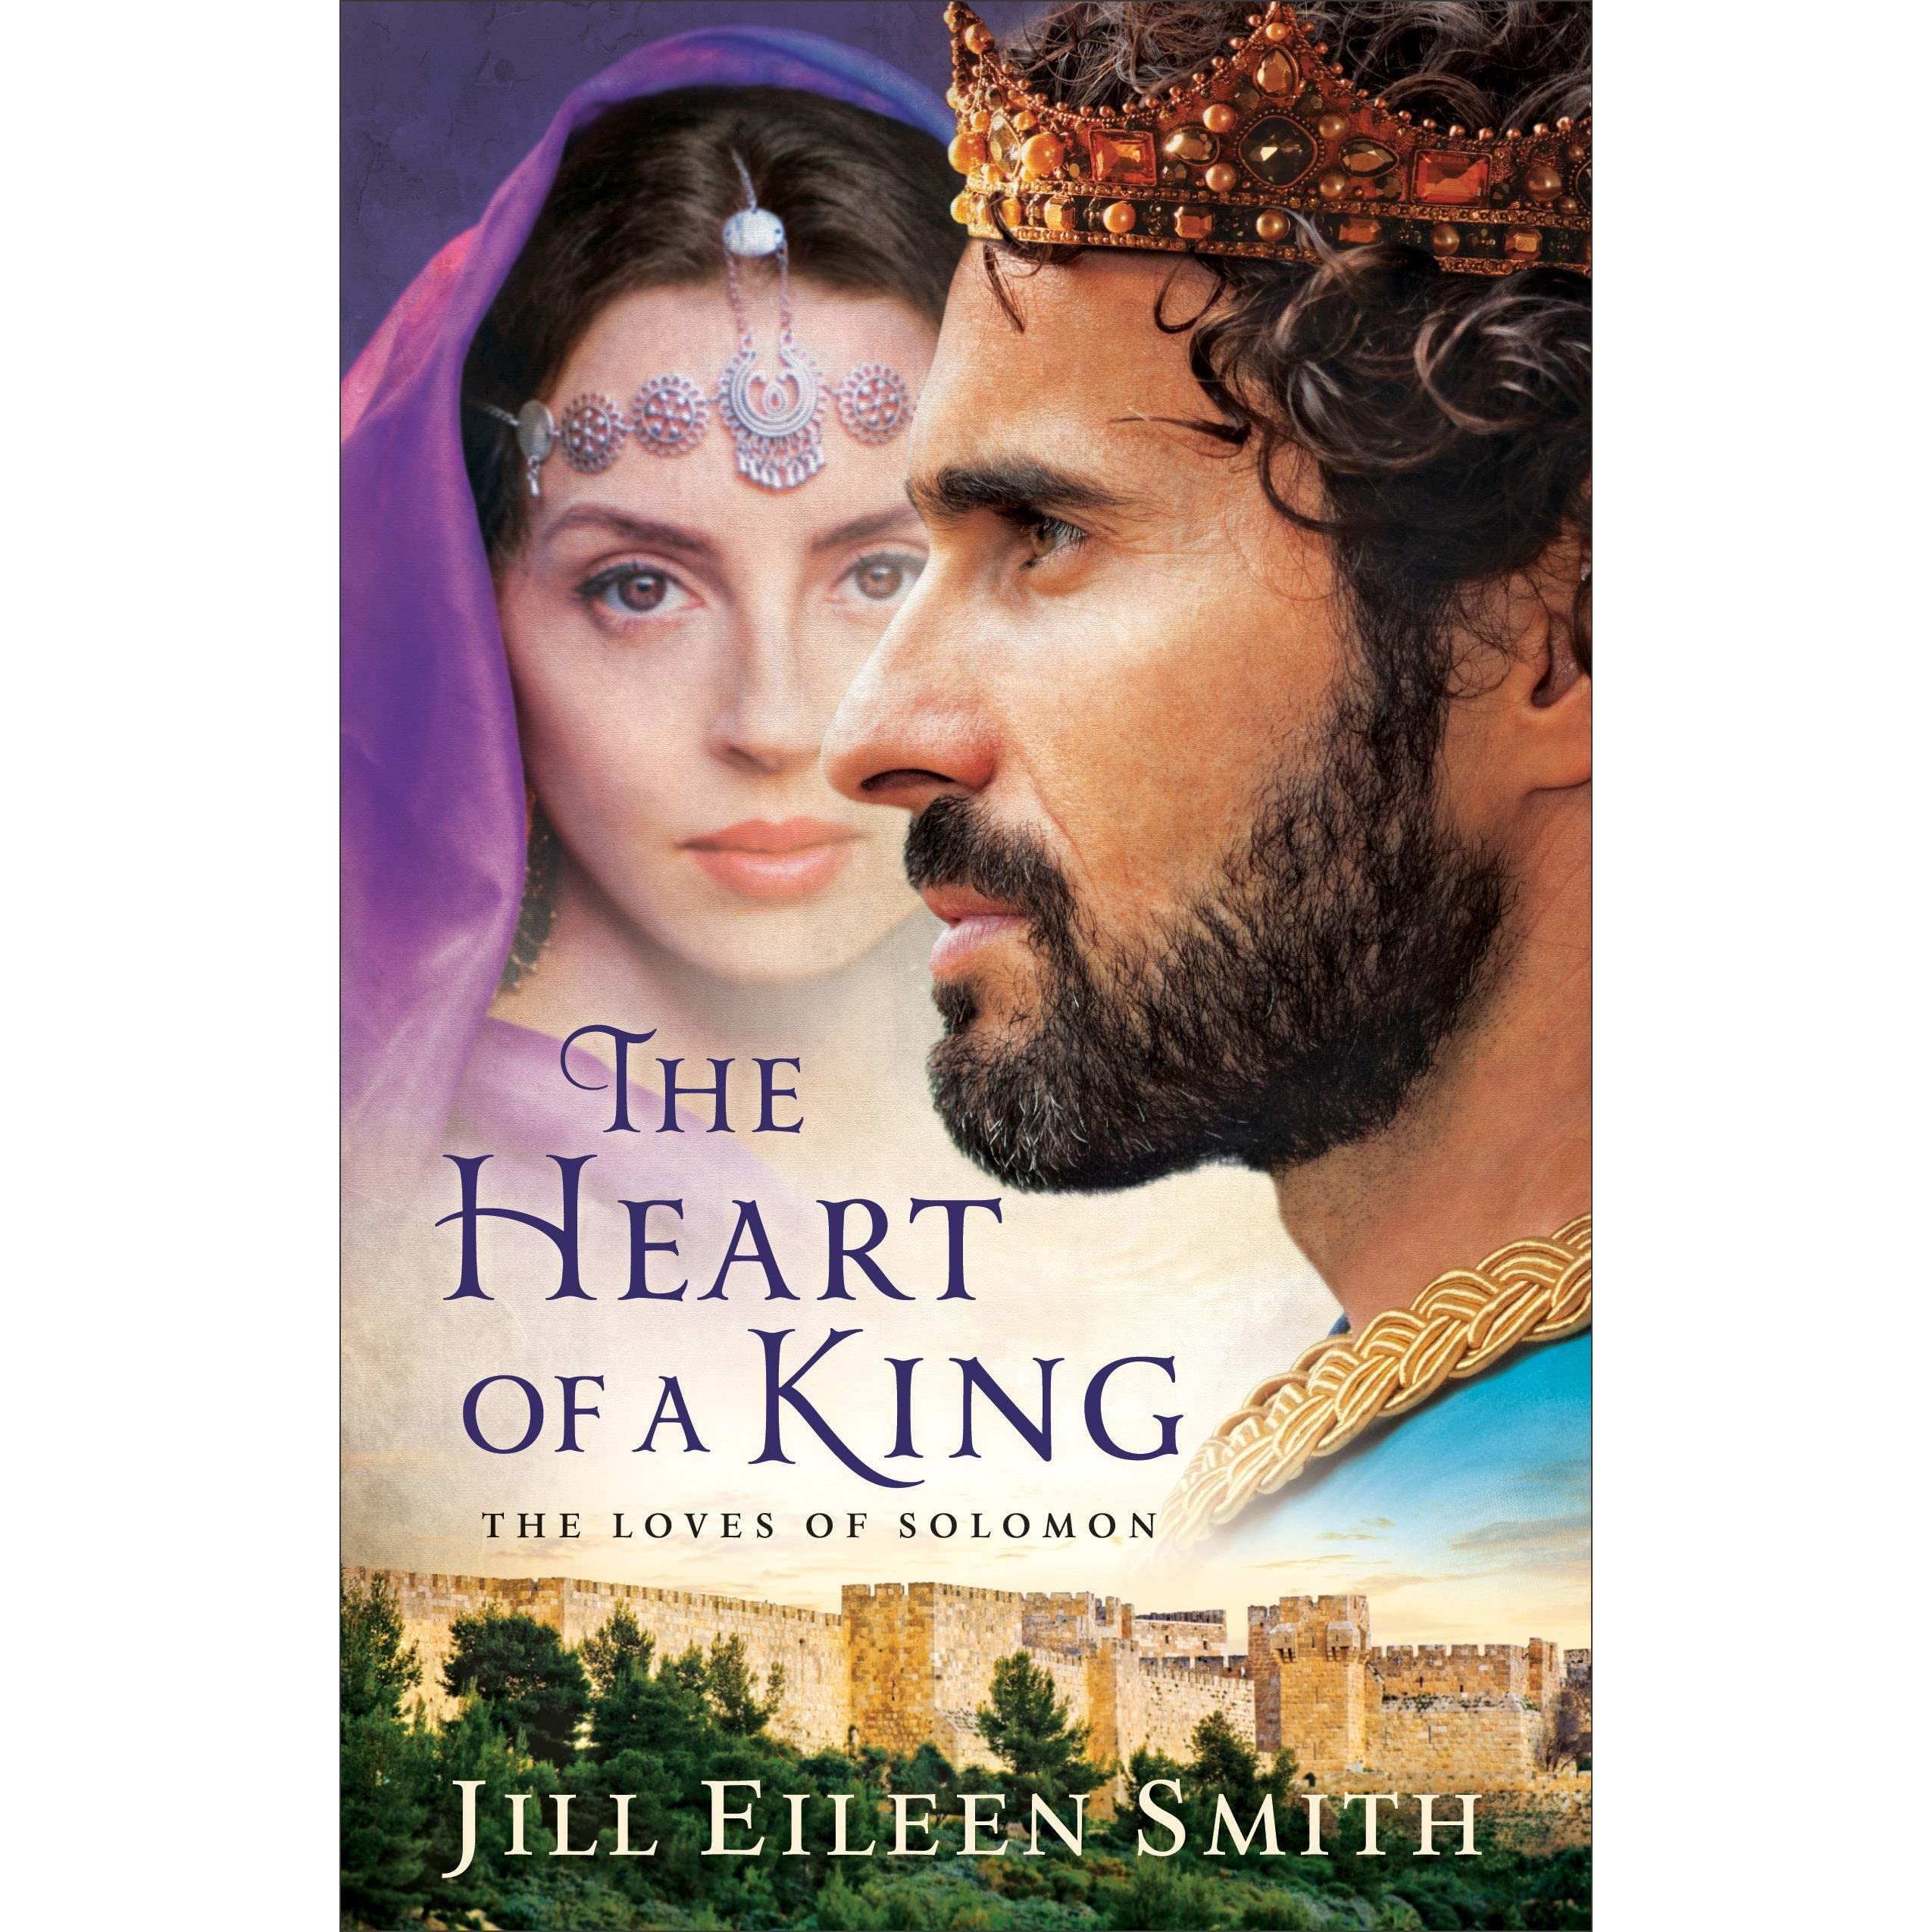 Image result for the heart of a king